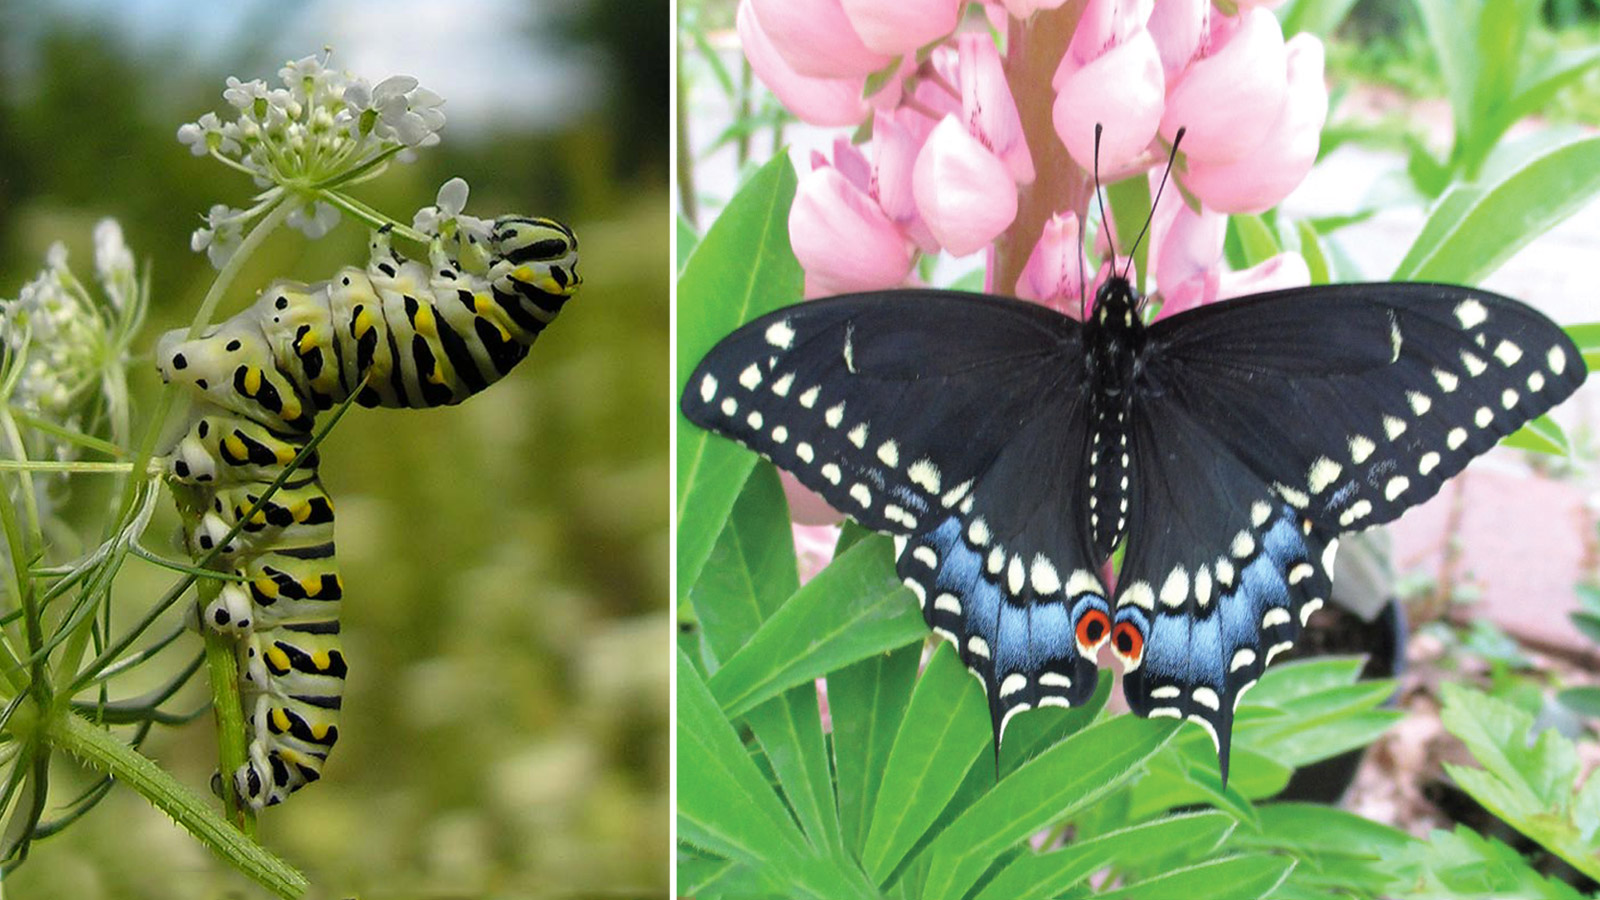 The Black Swallowtail Butterfly